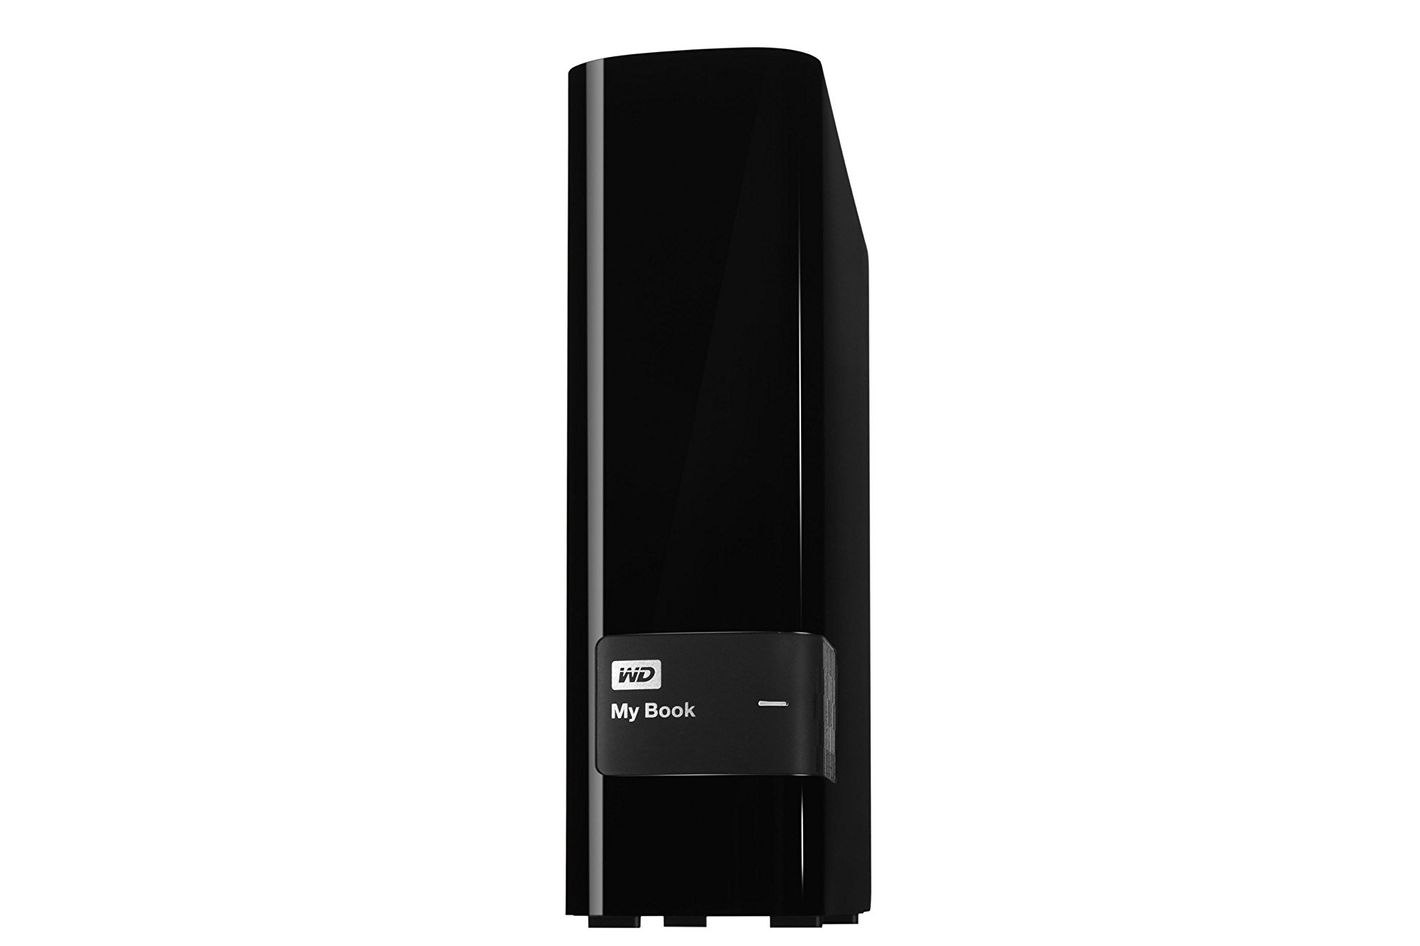 WD my book 4-terabyte desktop external hard drive